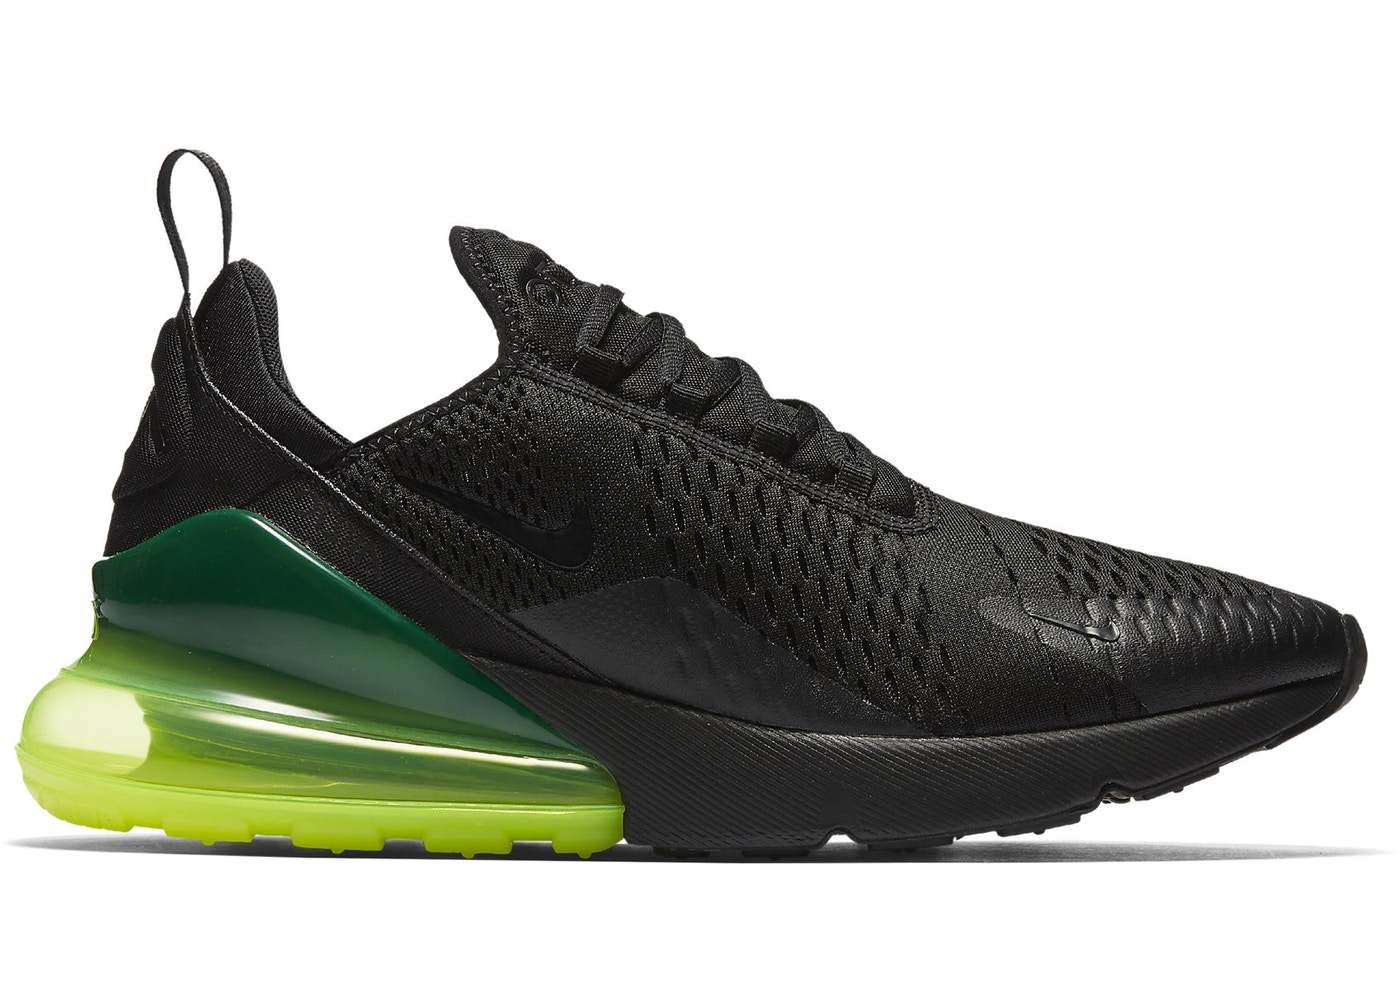 Nike Air Max Shoes - New Lowest Asks d9921831c